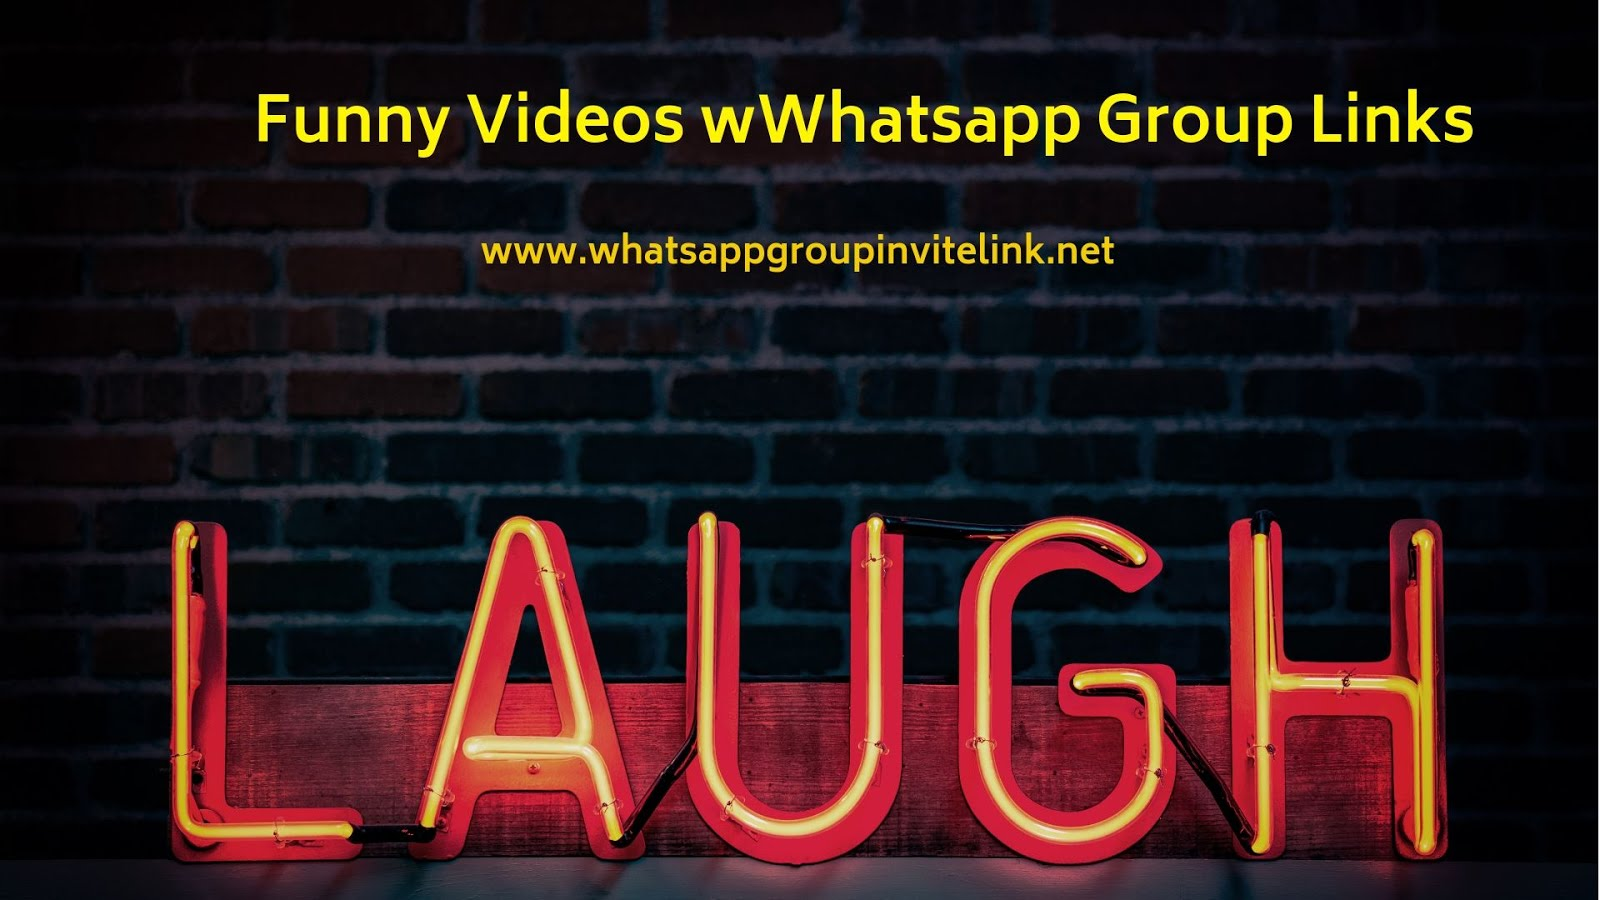 Whatsapp Group Invite Links: Funny Videos Whatsapp Group Links